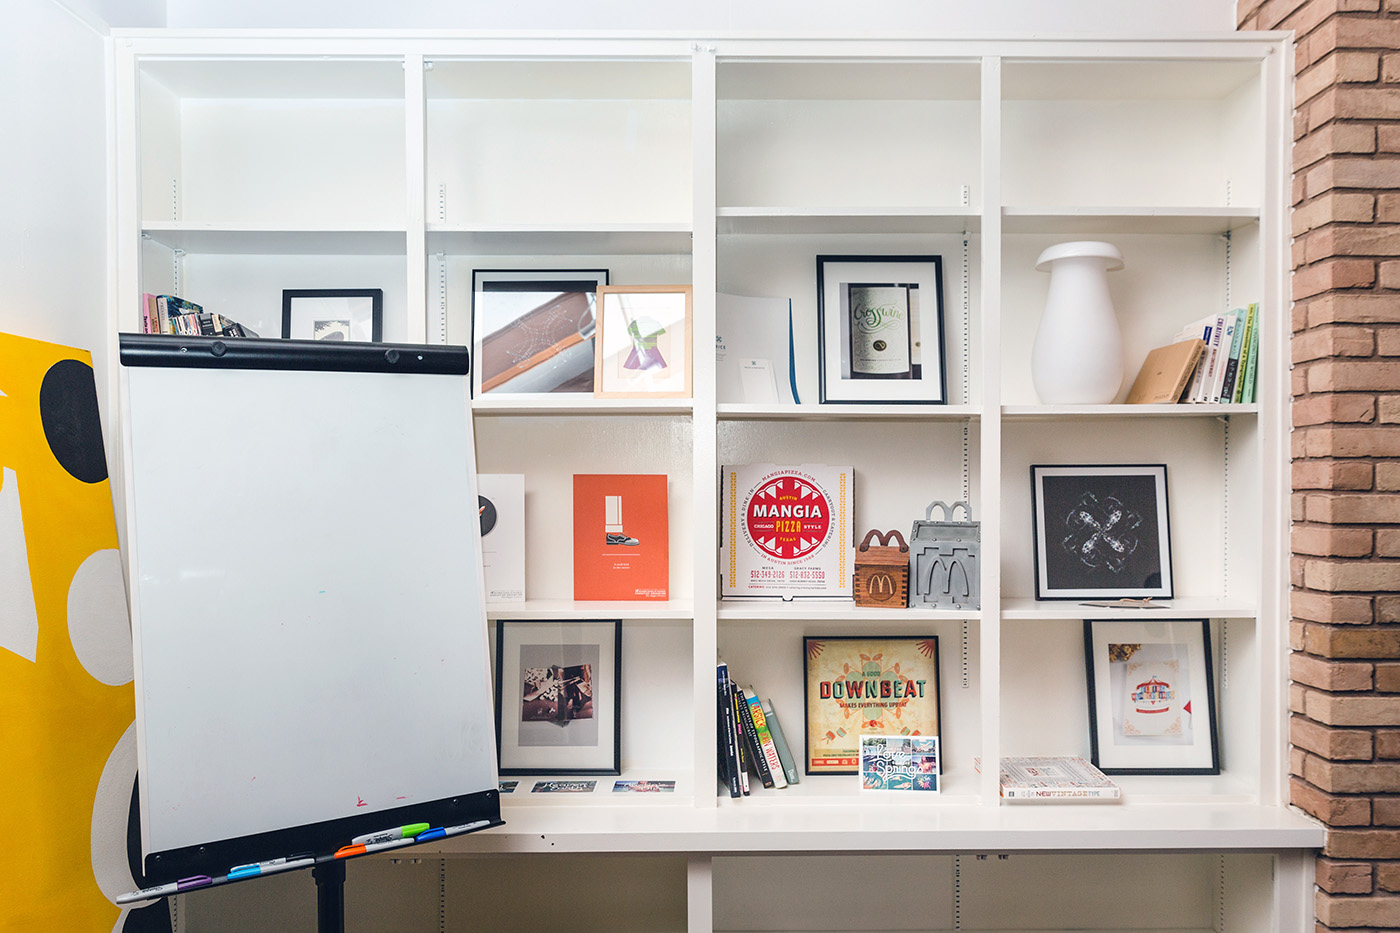 Bookshelves and a whiteboard at the lookthinkmake office.